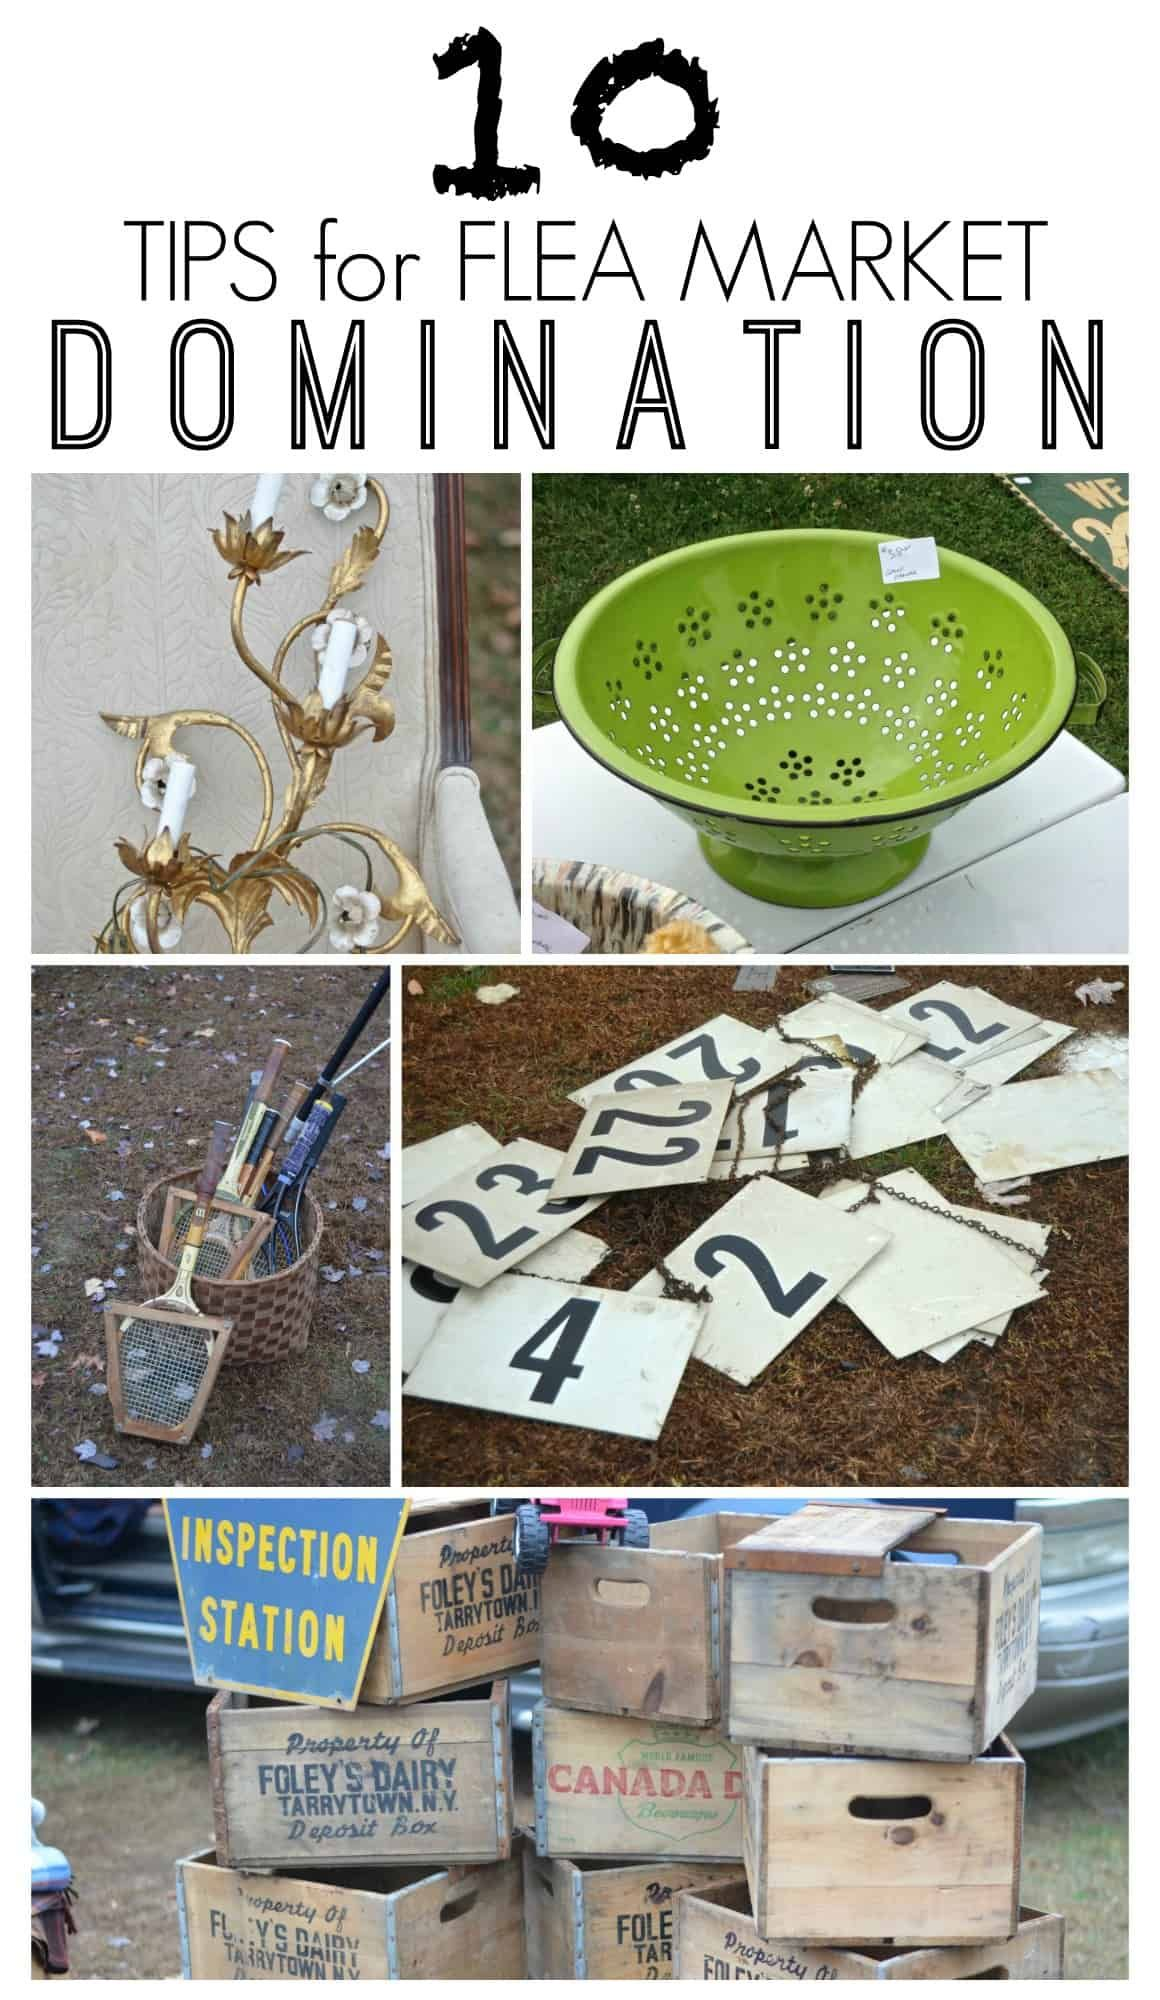 Tips For Flea Market Domination